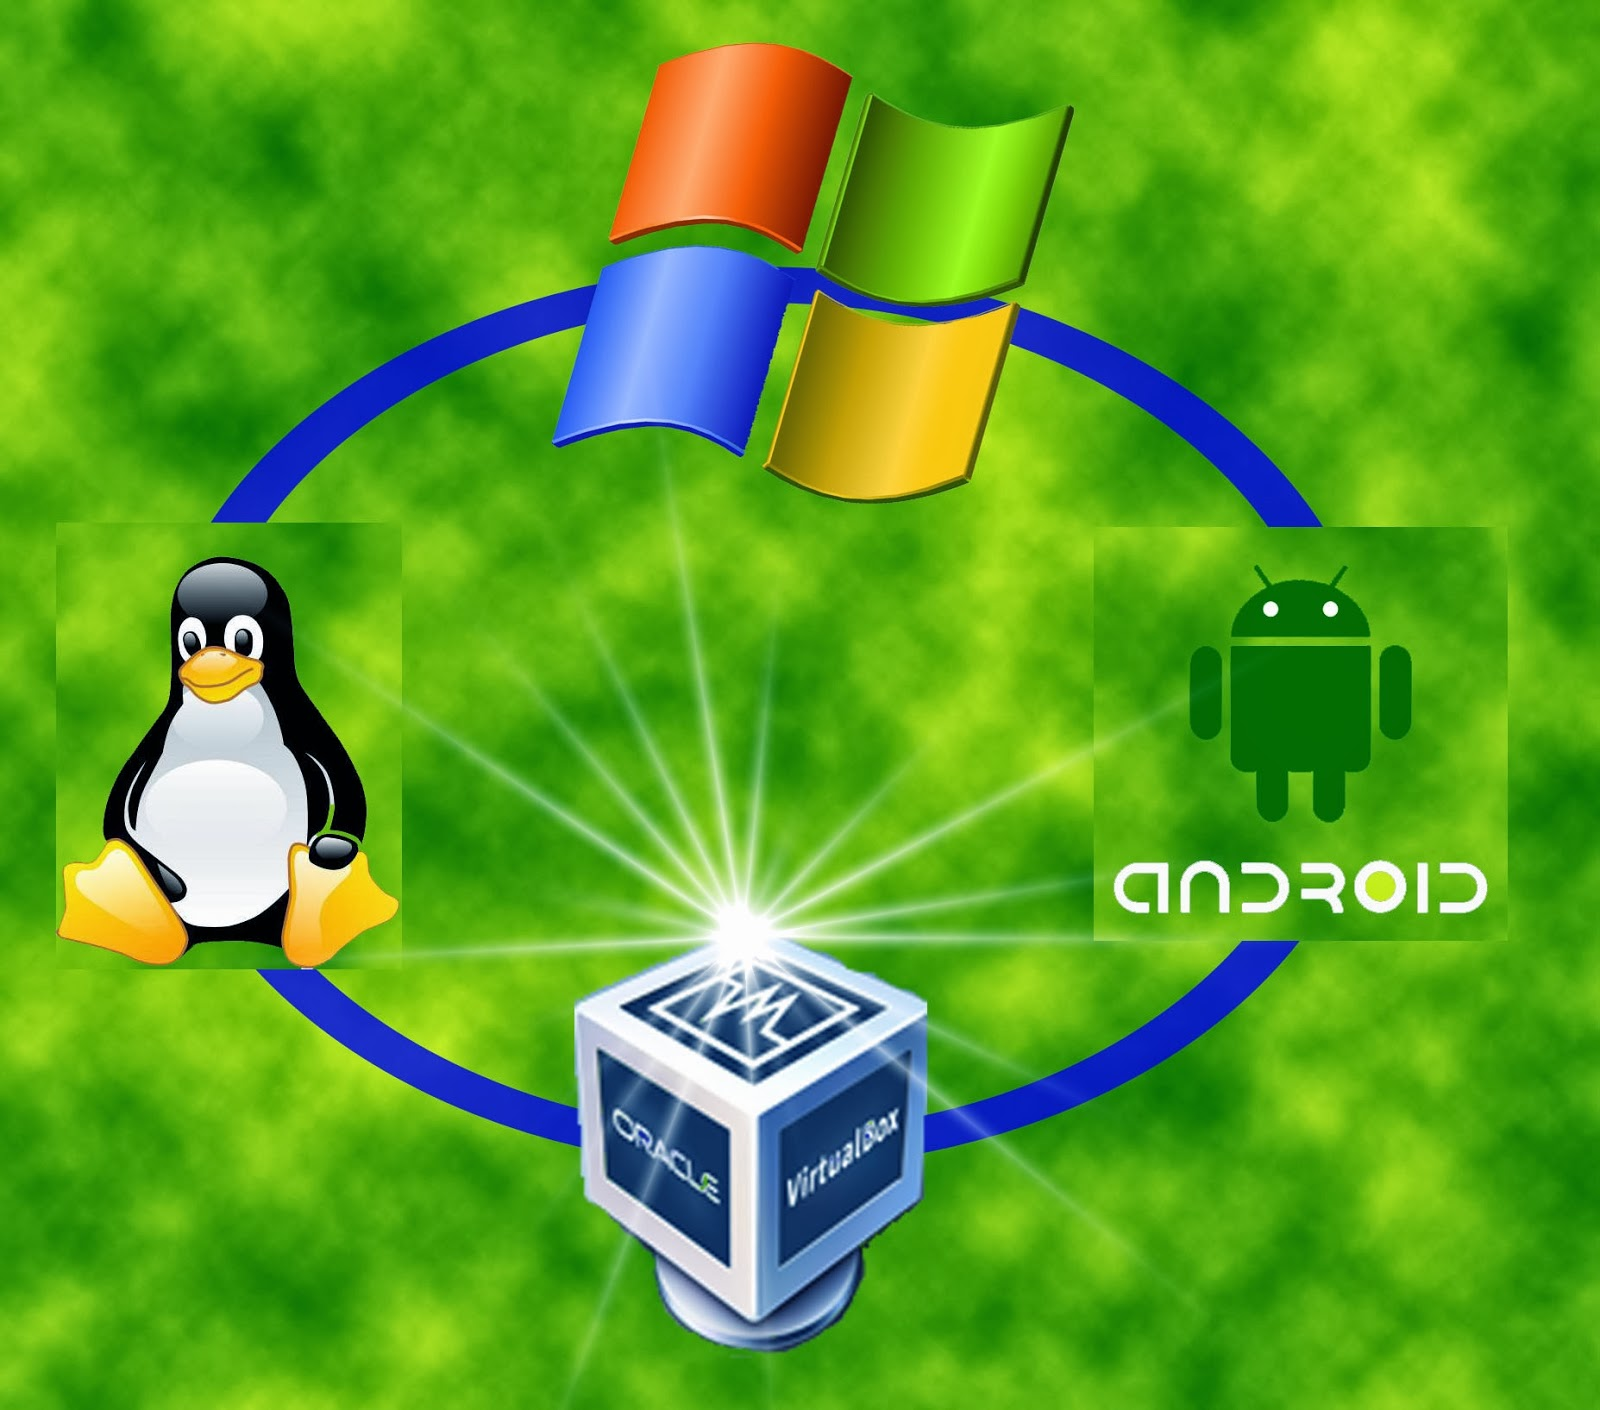 Android, Linux, and other OS on VirtualBox